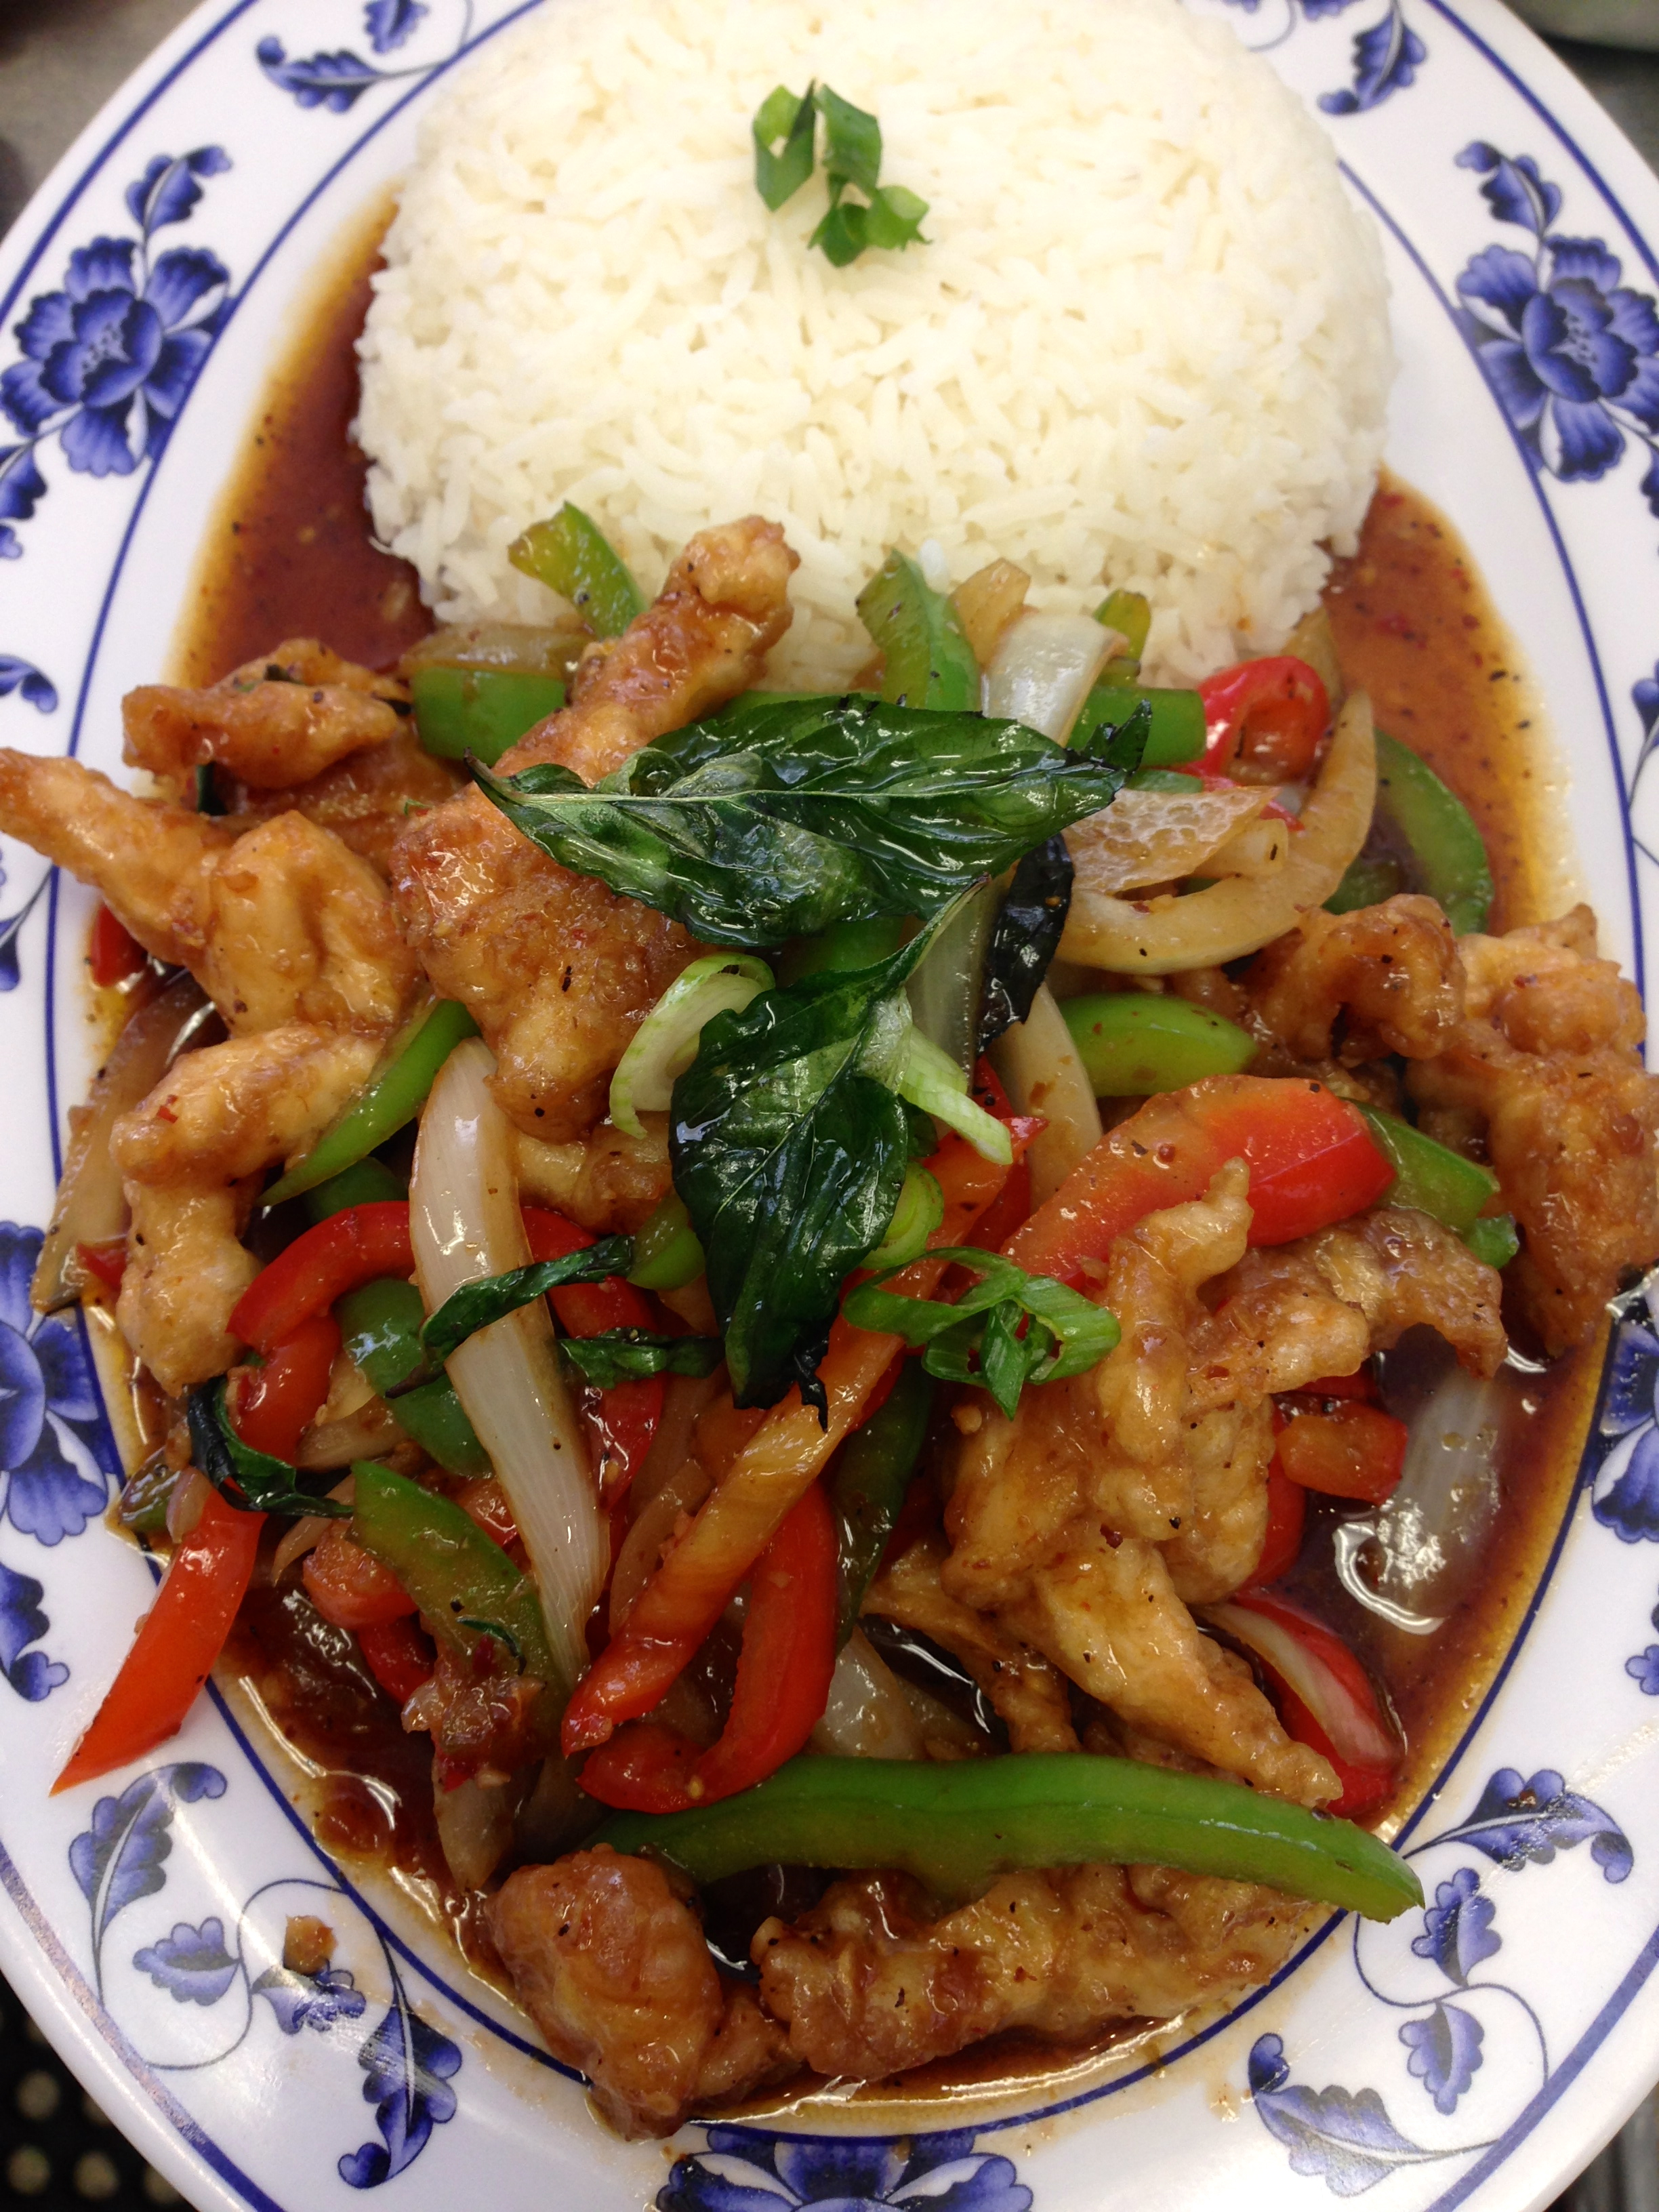 SP 3 STIR FRIED BREADED CHICKEN WITH CHILI PASTE Image